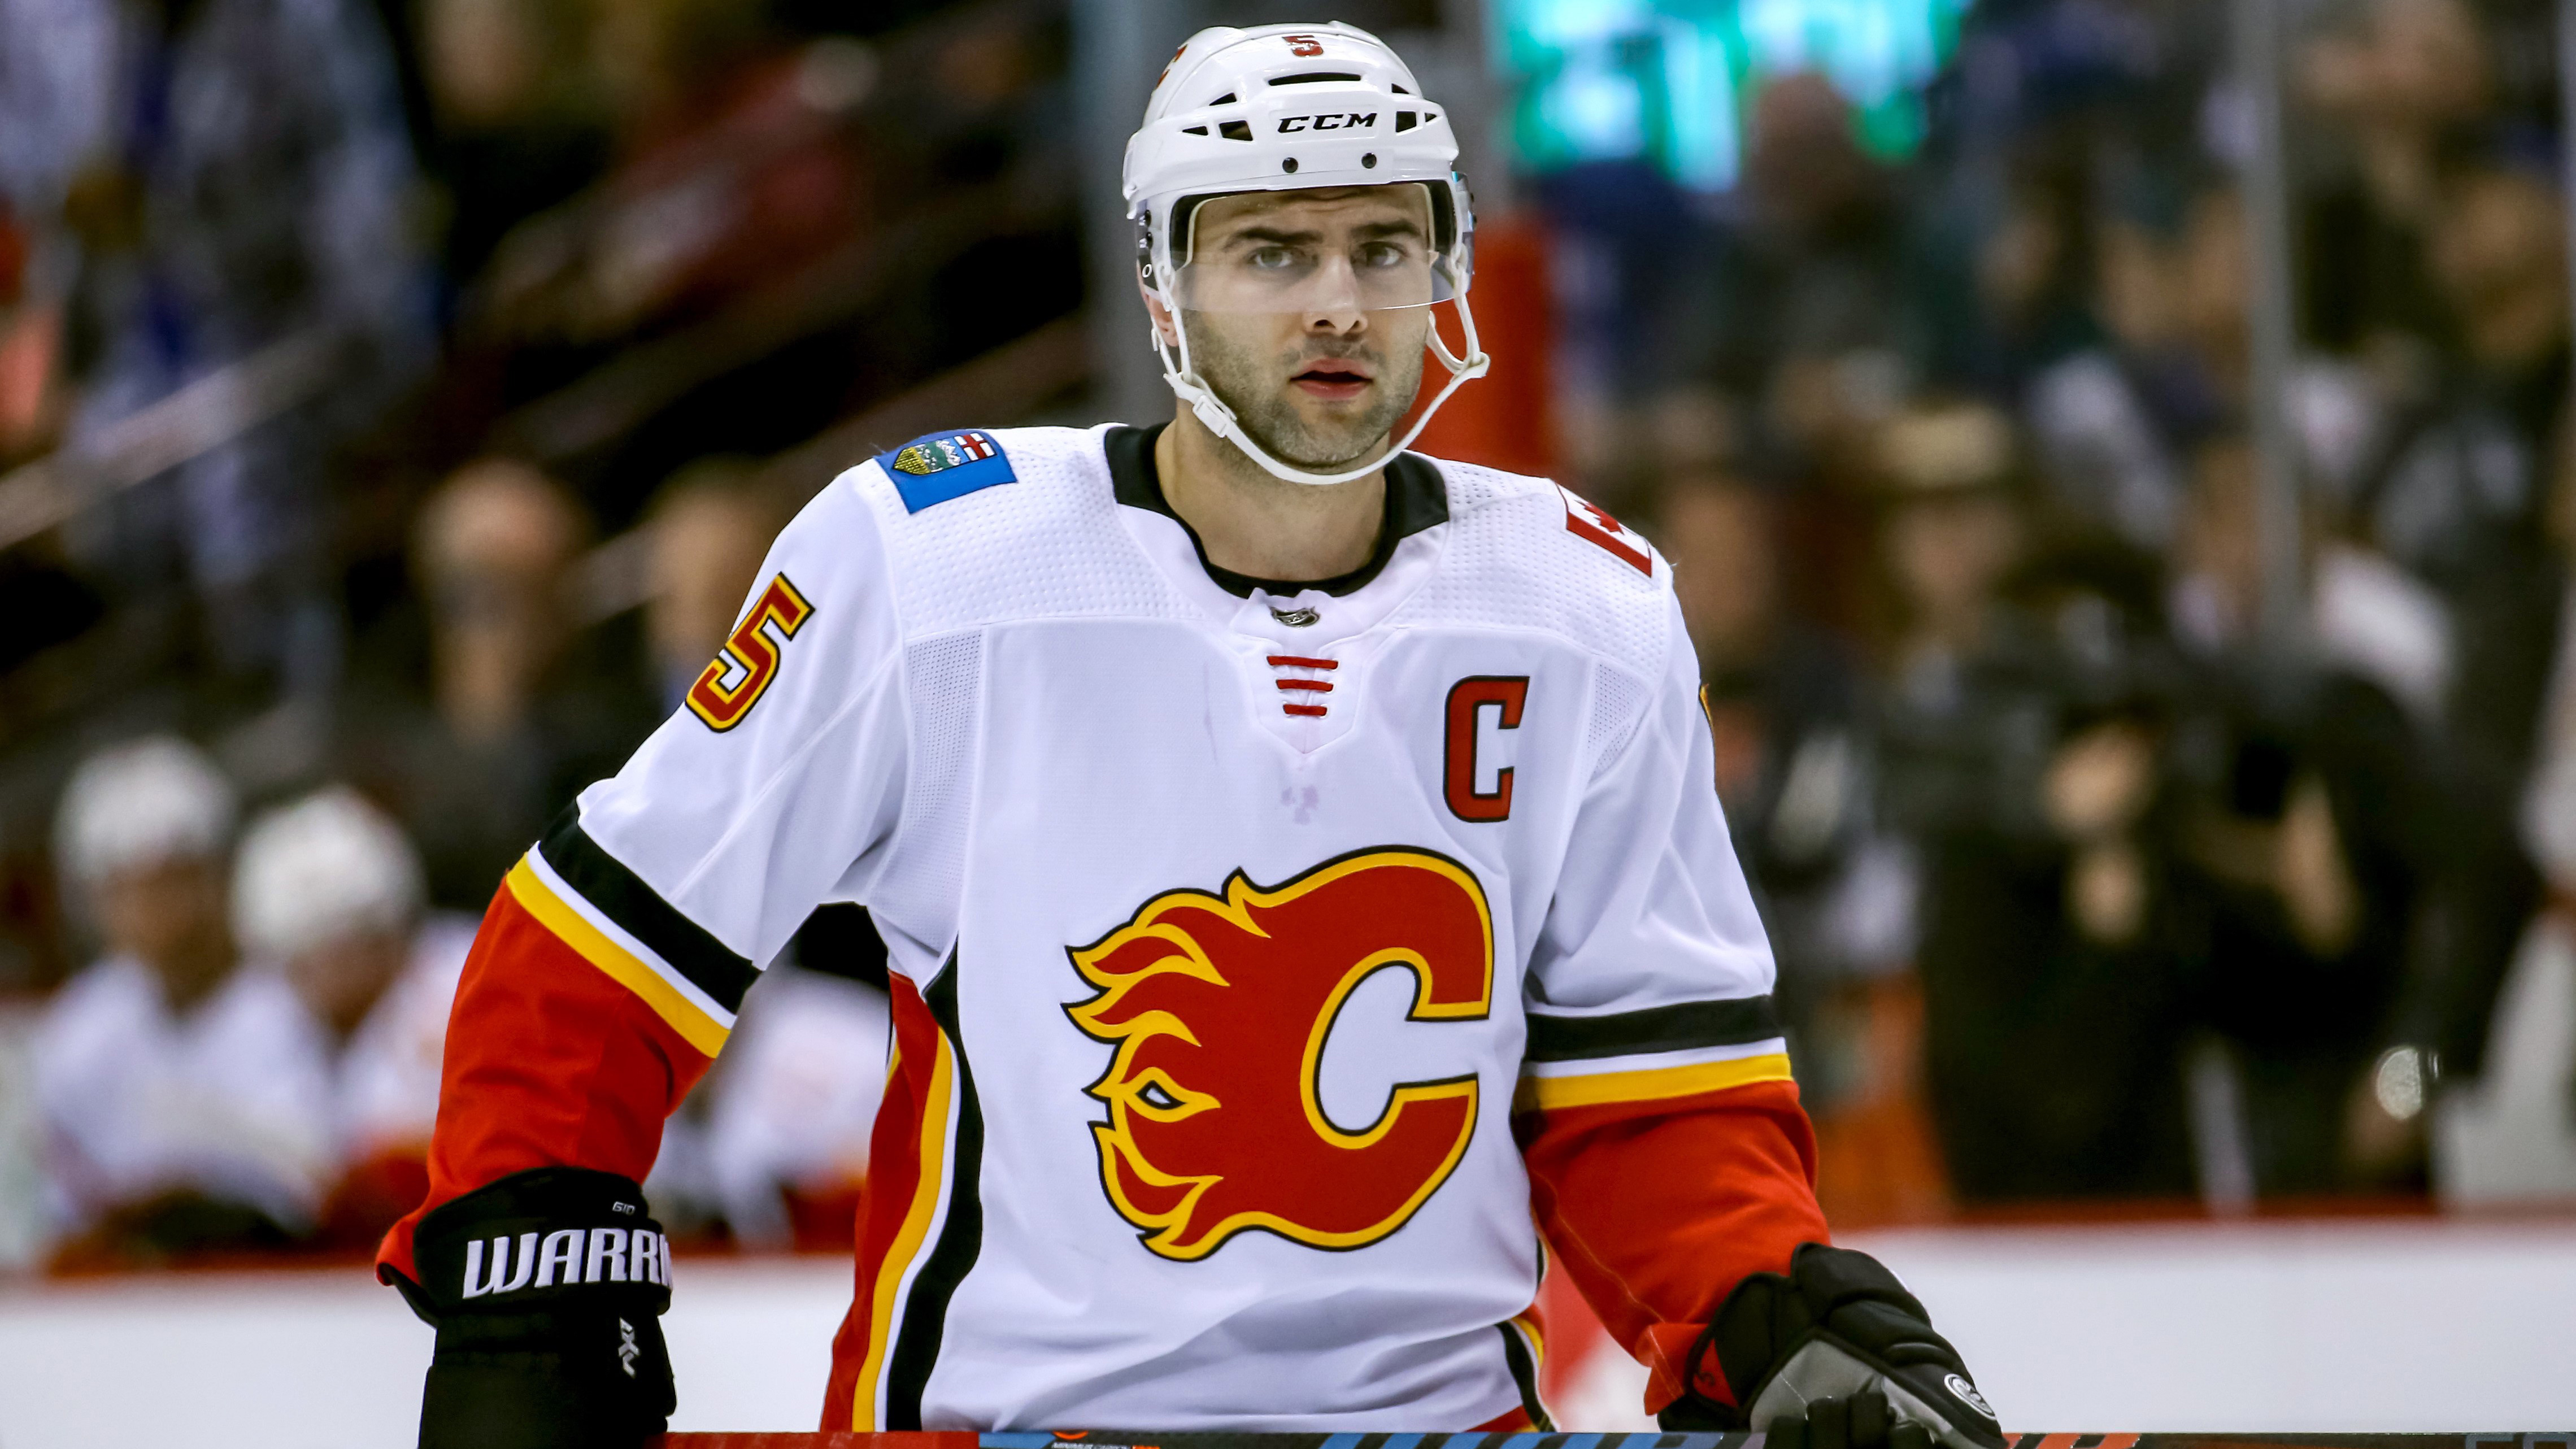 Flames captain Mark Giordano wins Norris Trophy for first time